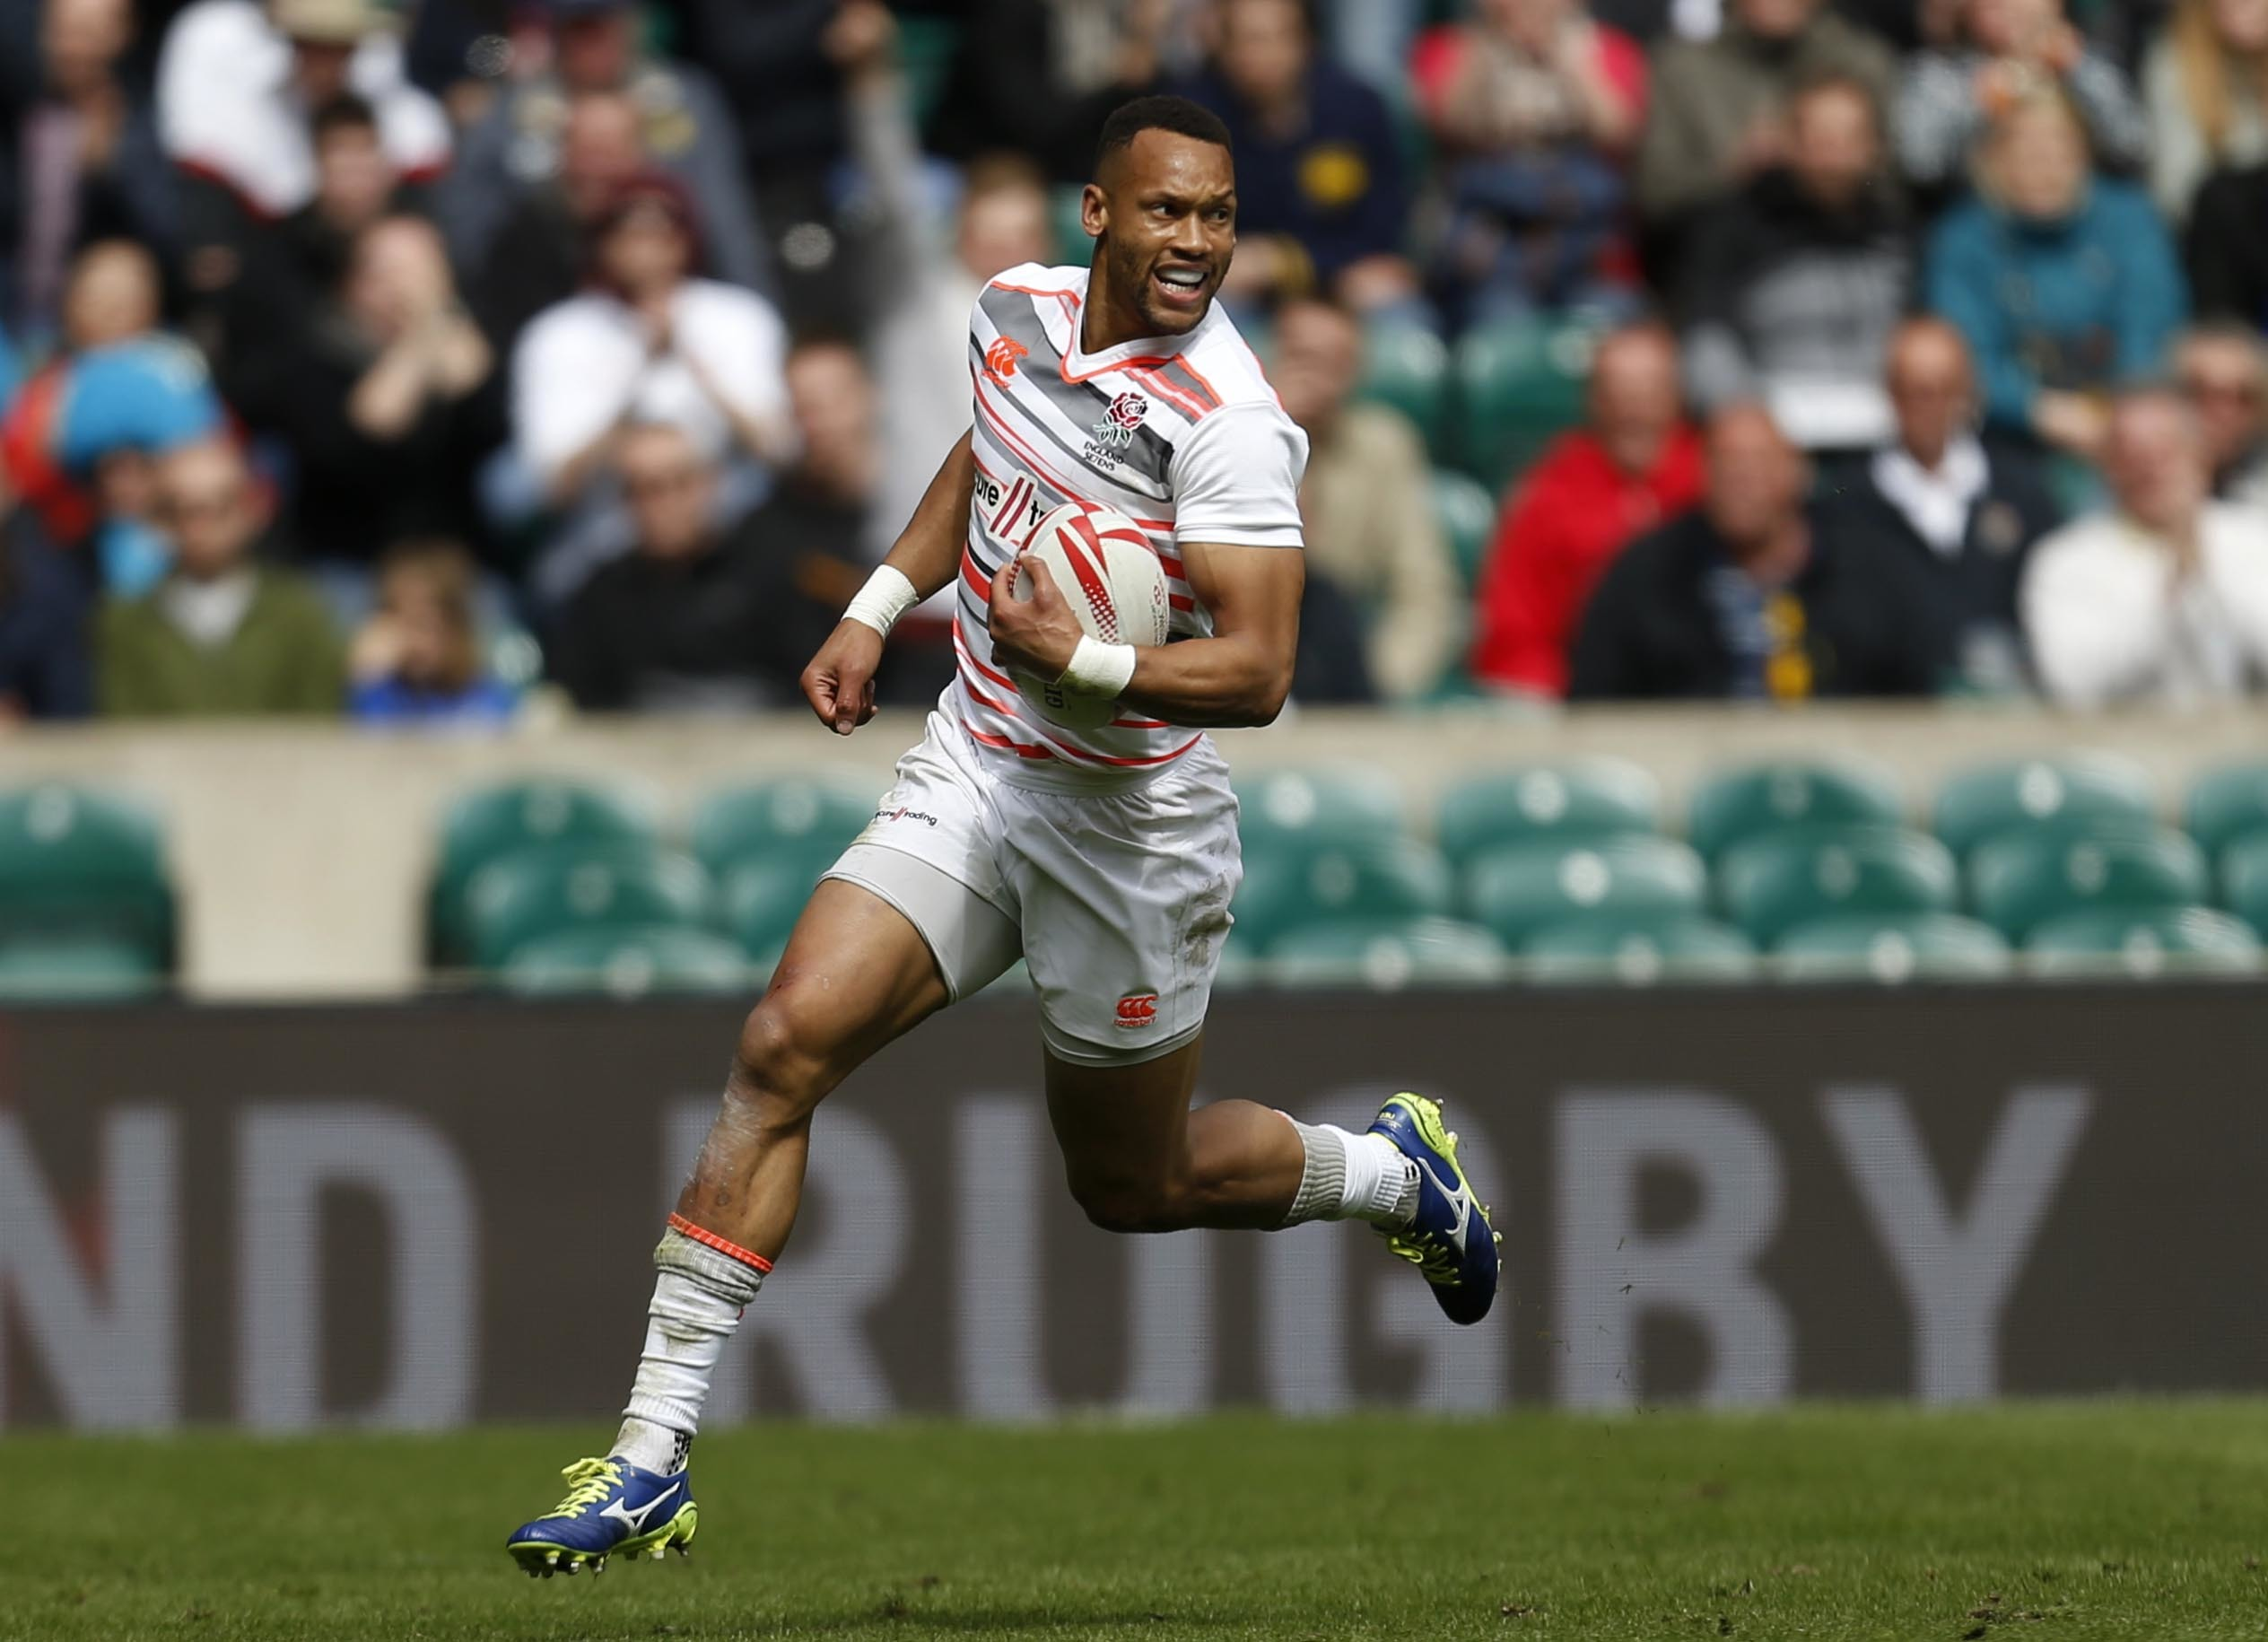 Dan Norton playing in the HSBC London Sevens 2017